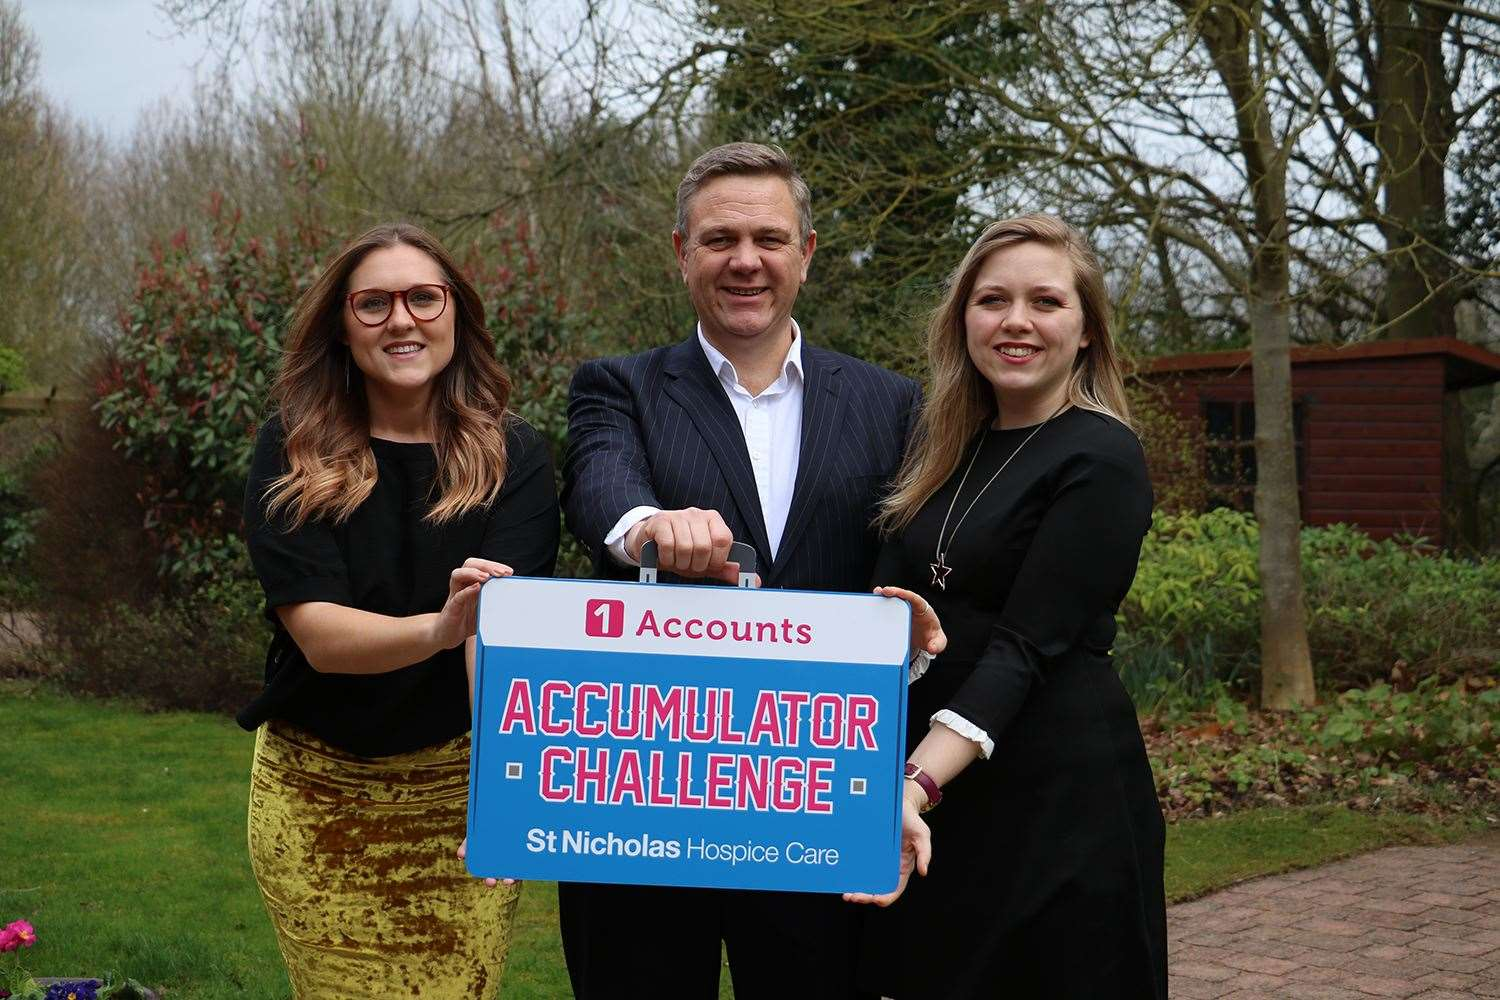 1 Accounts director Paul Donno and his daughter Jade (right) at the launch earlier this year of the St Nicholas Hospice Care Accumulator Challenge. Contributed picture